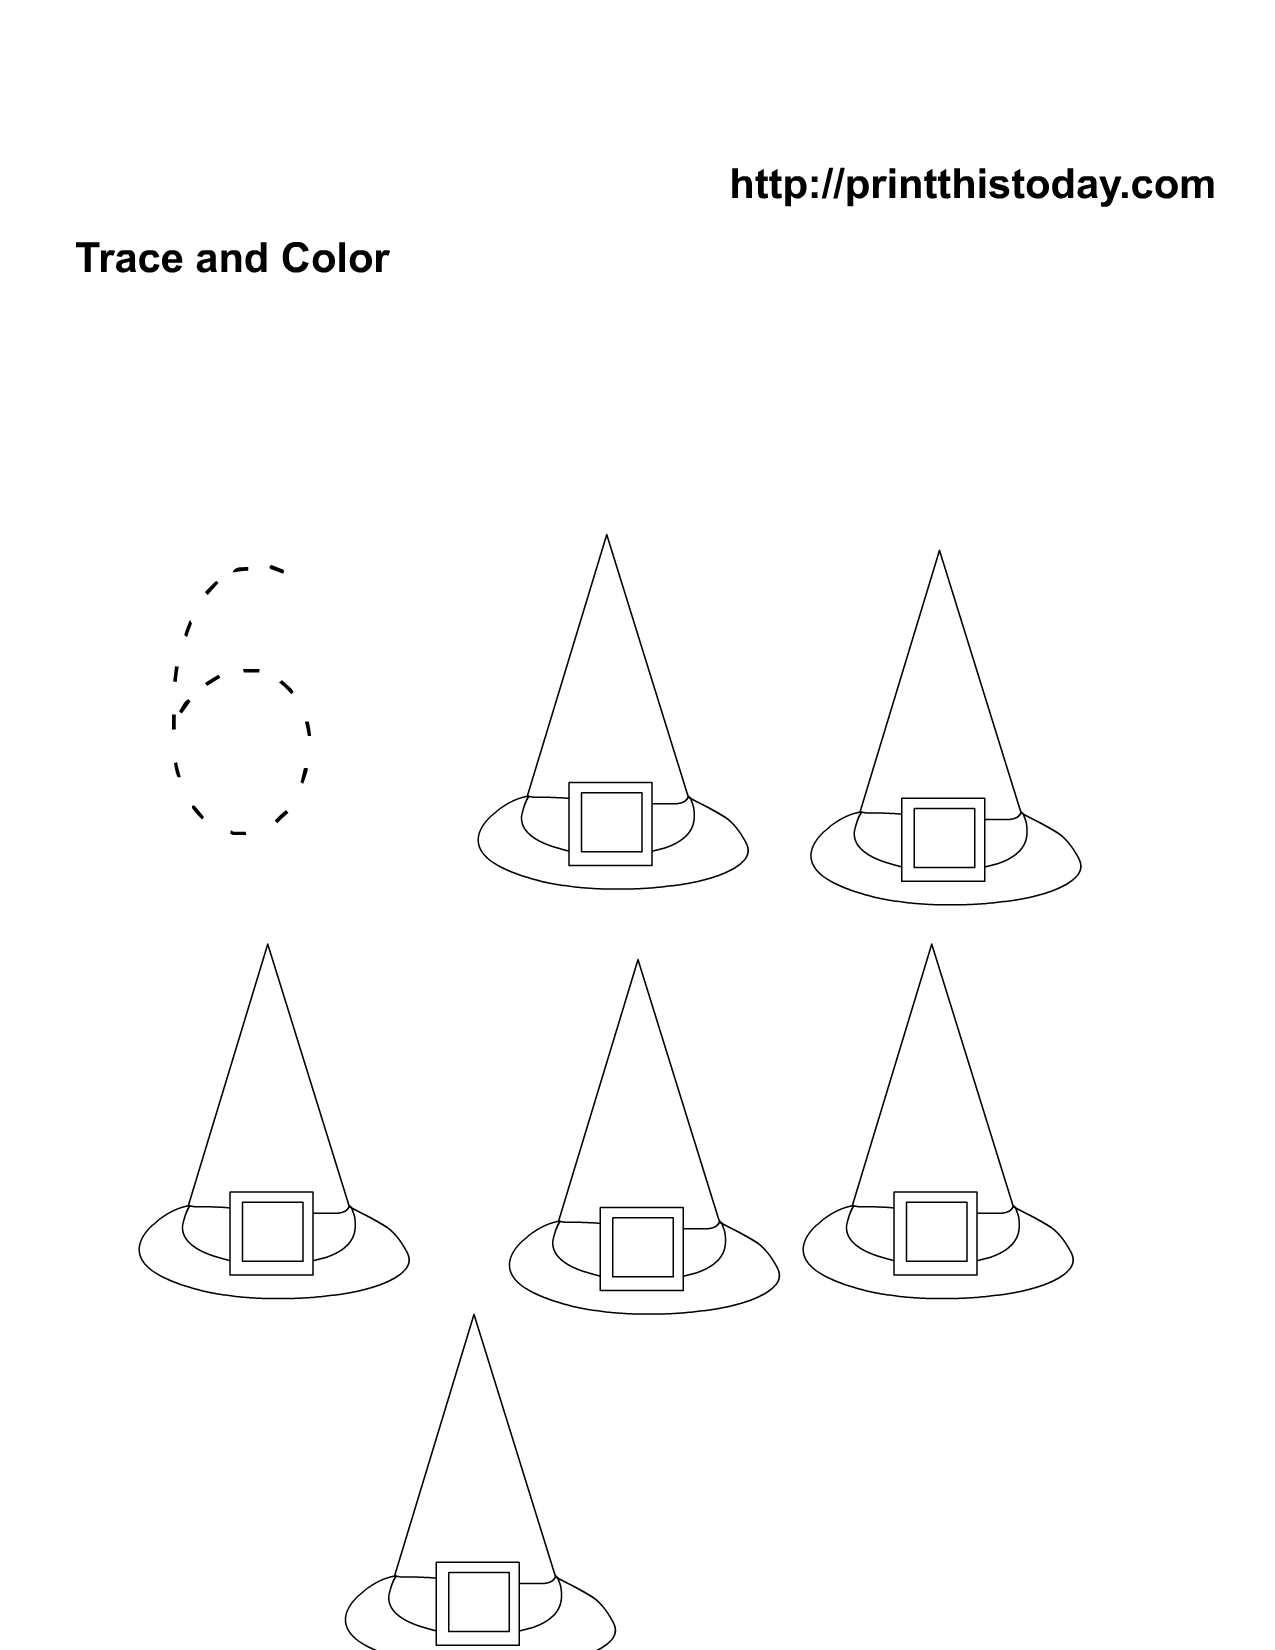 Number Worksheets Number furthermore Number Worksheets Number also Tracing Numbers Number Words Premium in addition E C A D A Edc B likewise Tracing Numbers Number Words Premium. on count and trace number worksheets